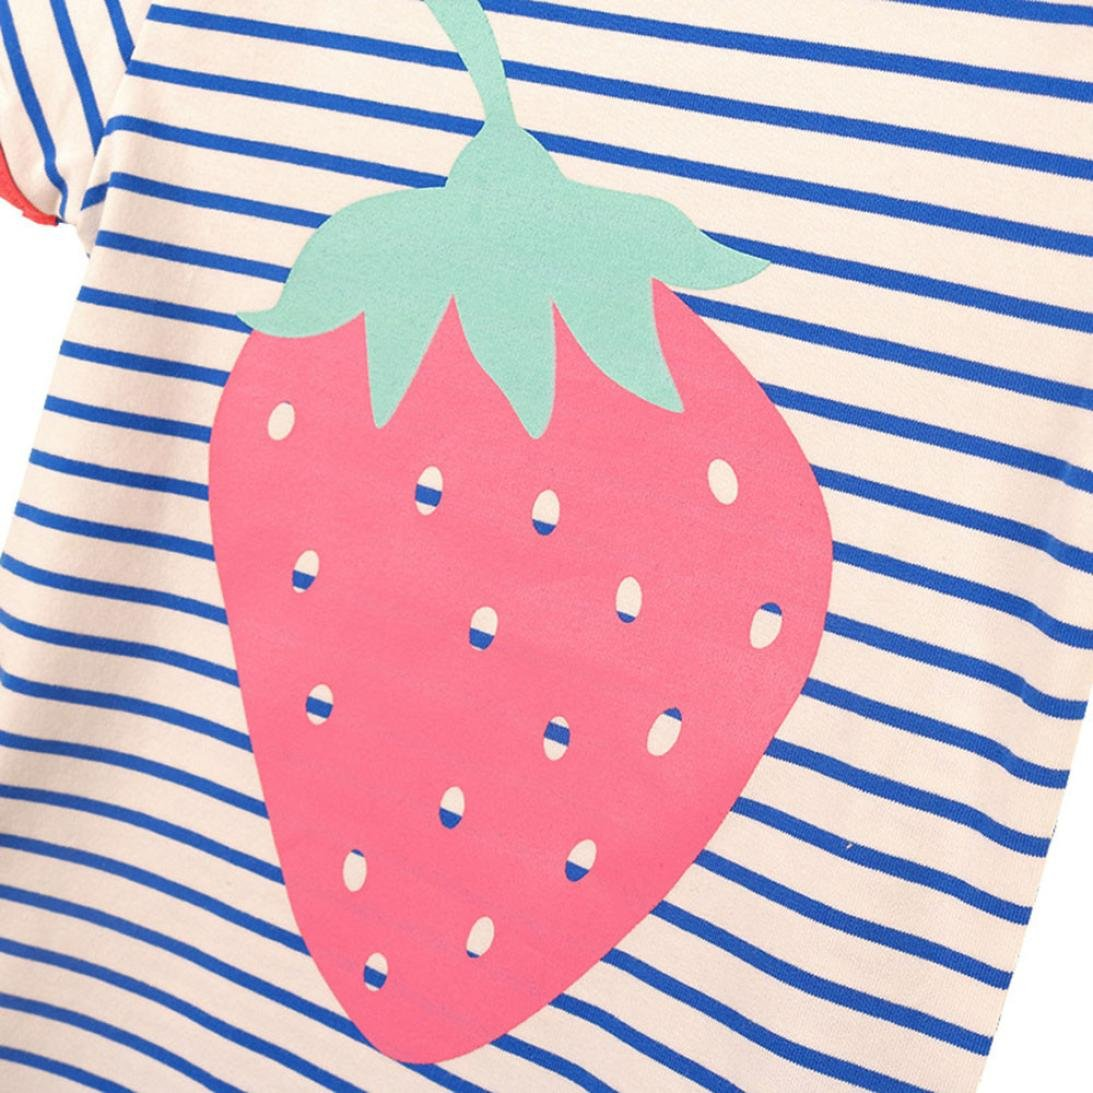 4-5T Webla Toddler Kids Baby Girls T-Shirt Strawberry Pattern Striped Summer Tops Blouse for 1-5 Years